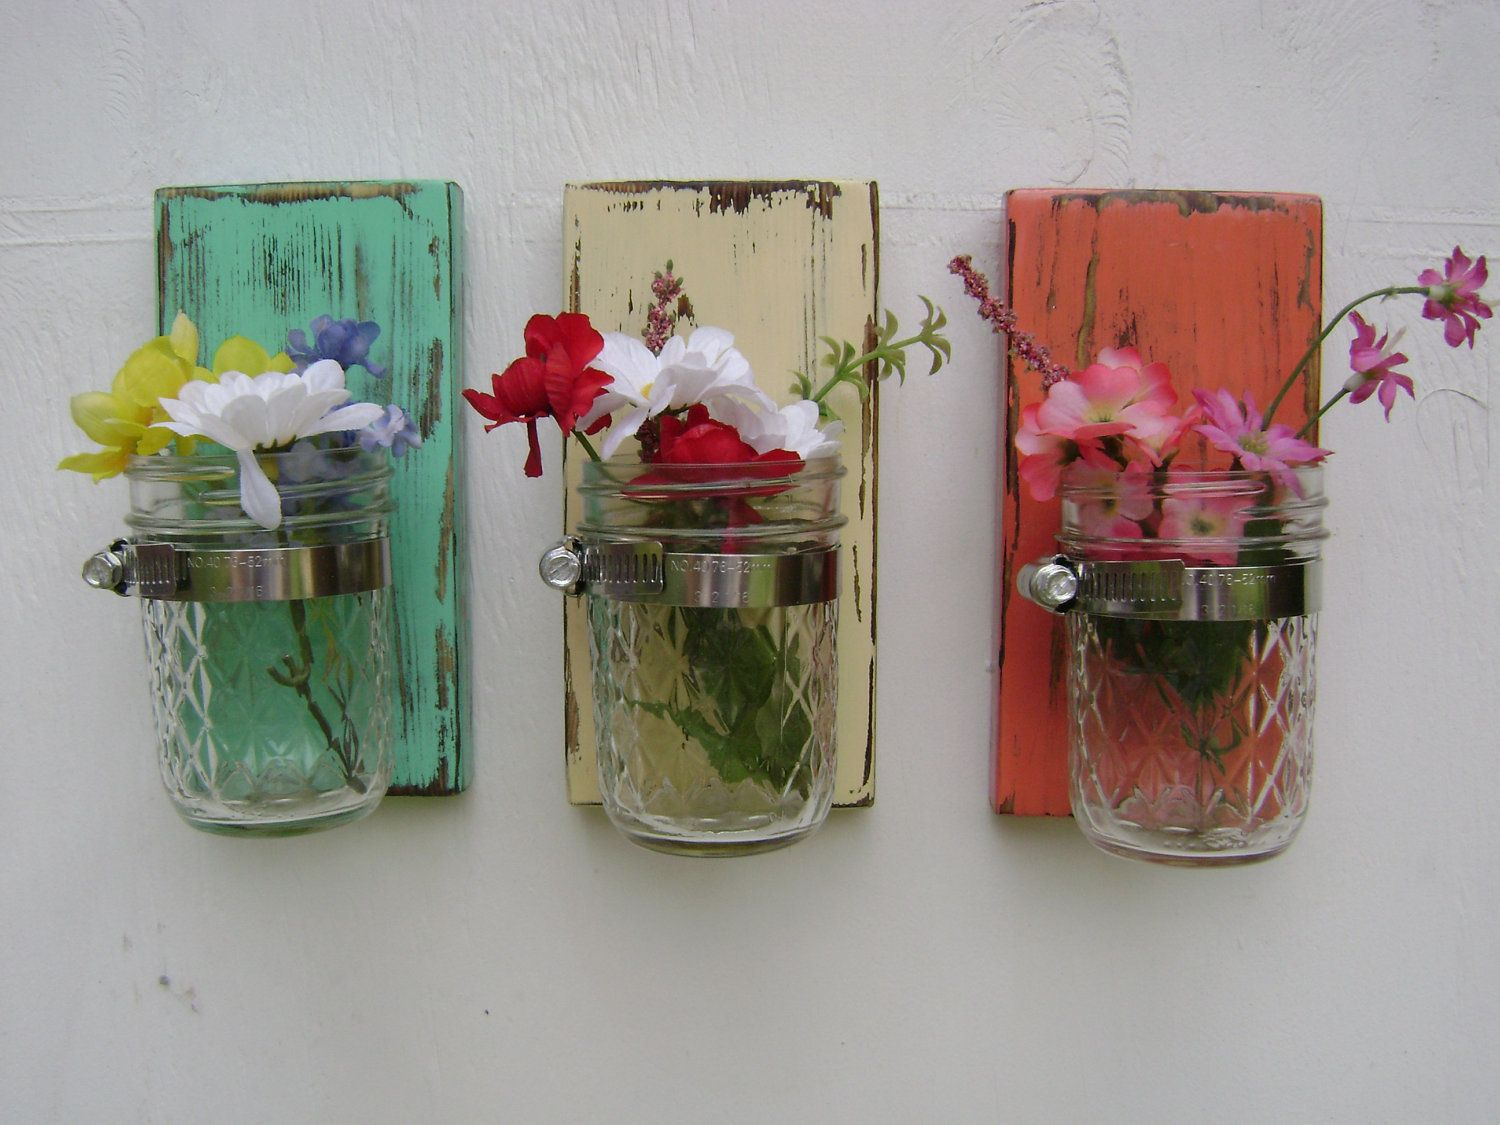 Wall Sconces With Vases : wall sconce shabby chic rustic wooden vases mason jar wood vase wall decor cottage decor - set ...